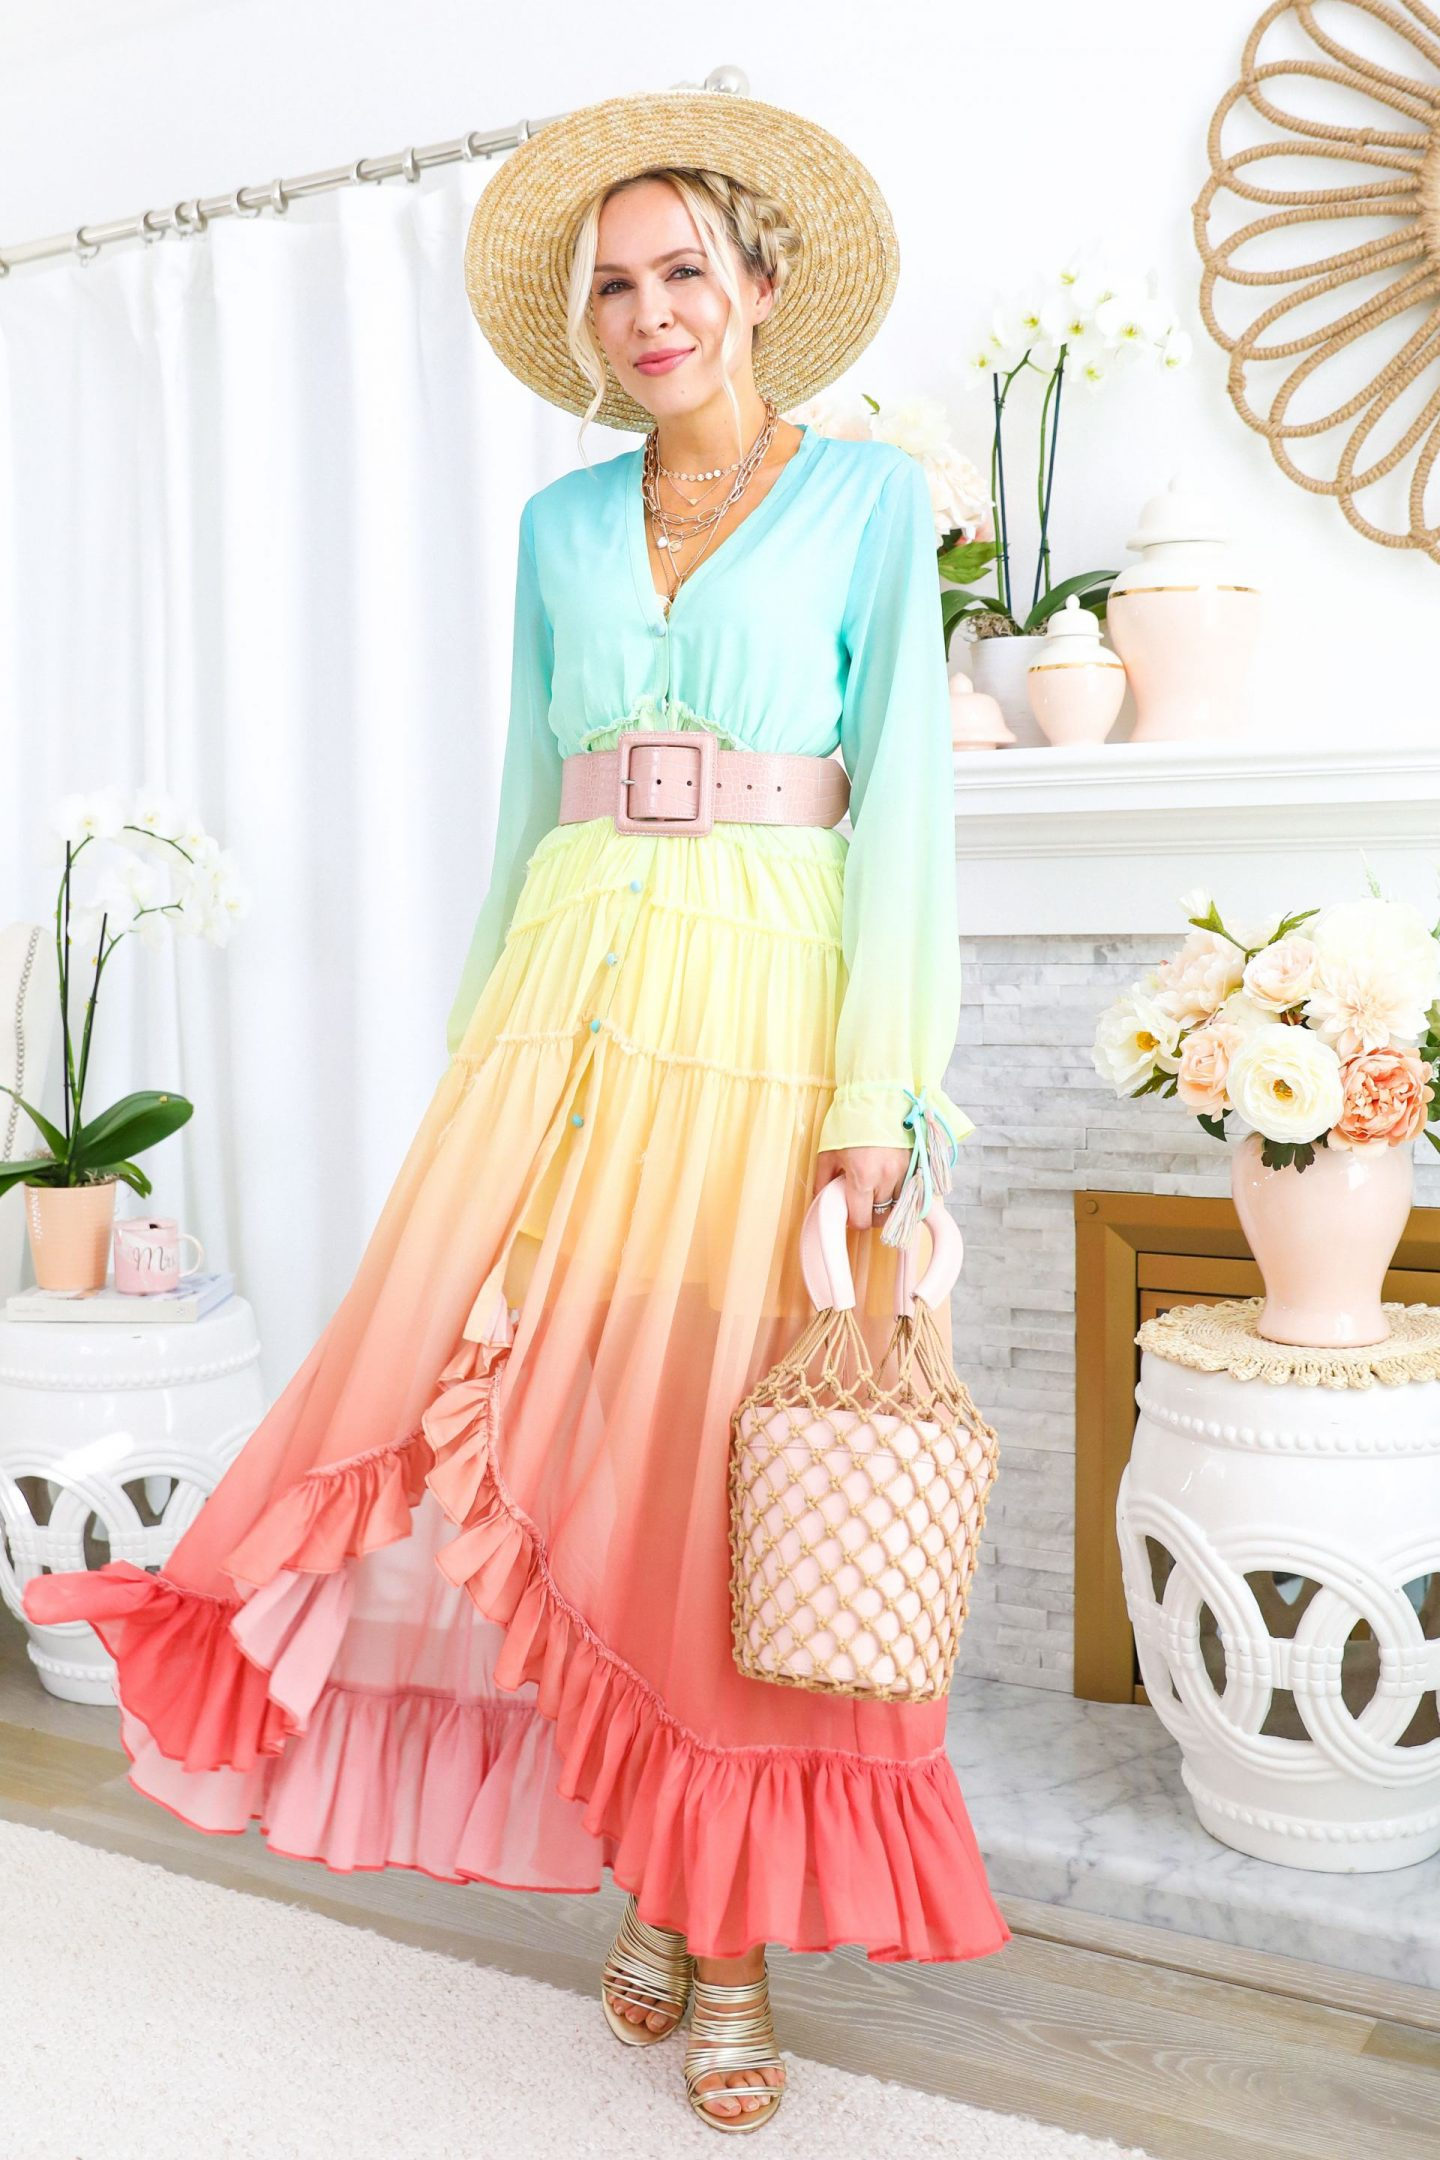 rococo sand multicolored dress styled 5 ways, featured by San Francisco style blogger Lombard and Fifth.